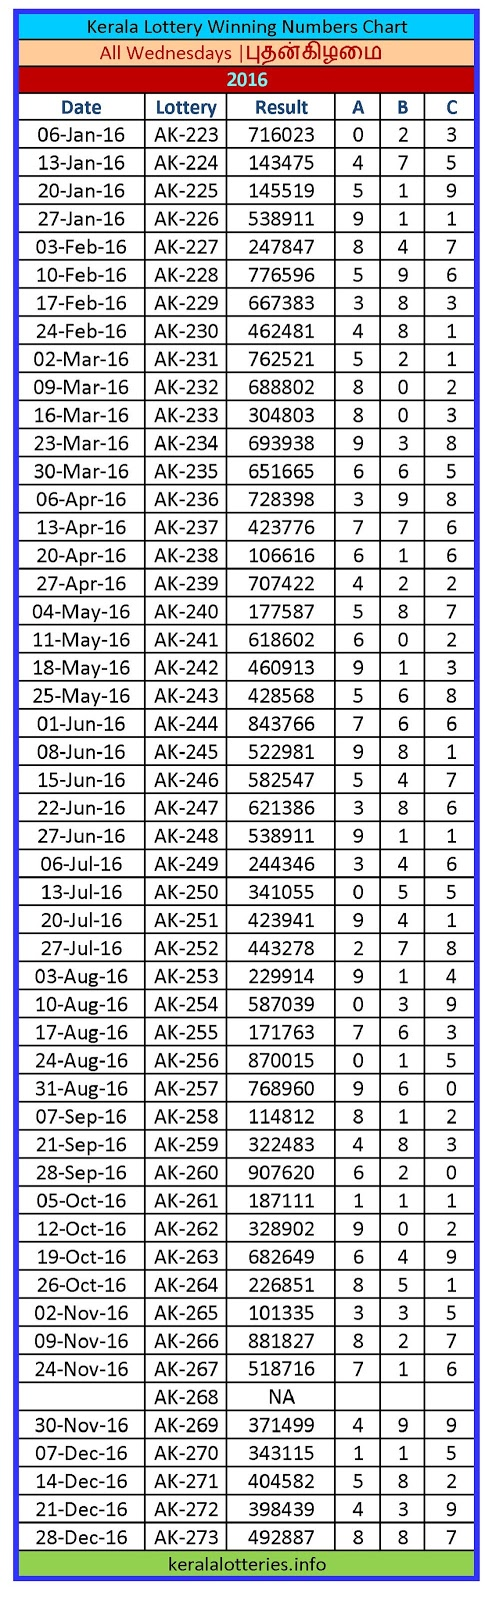 Kerala Lottery Winning Number Chart Wednesday -2016